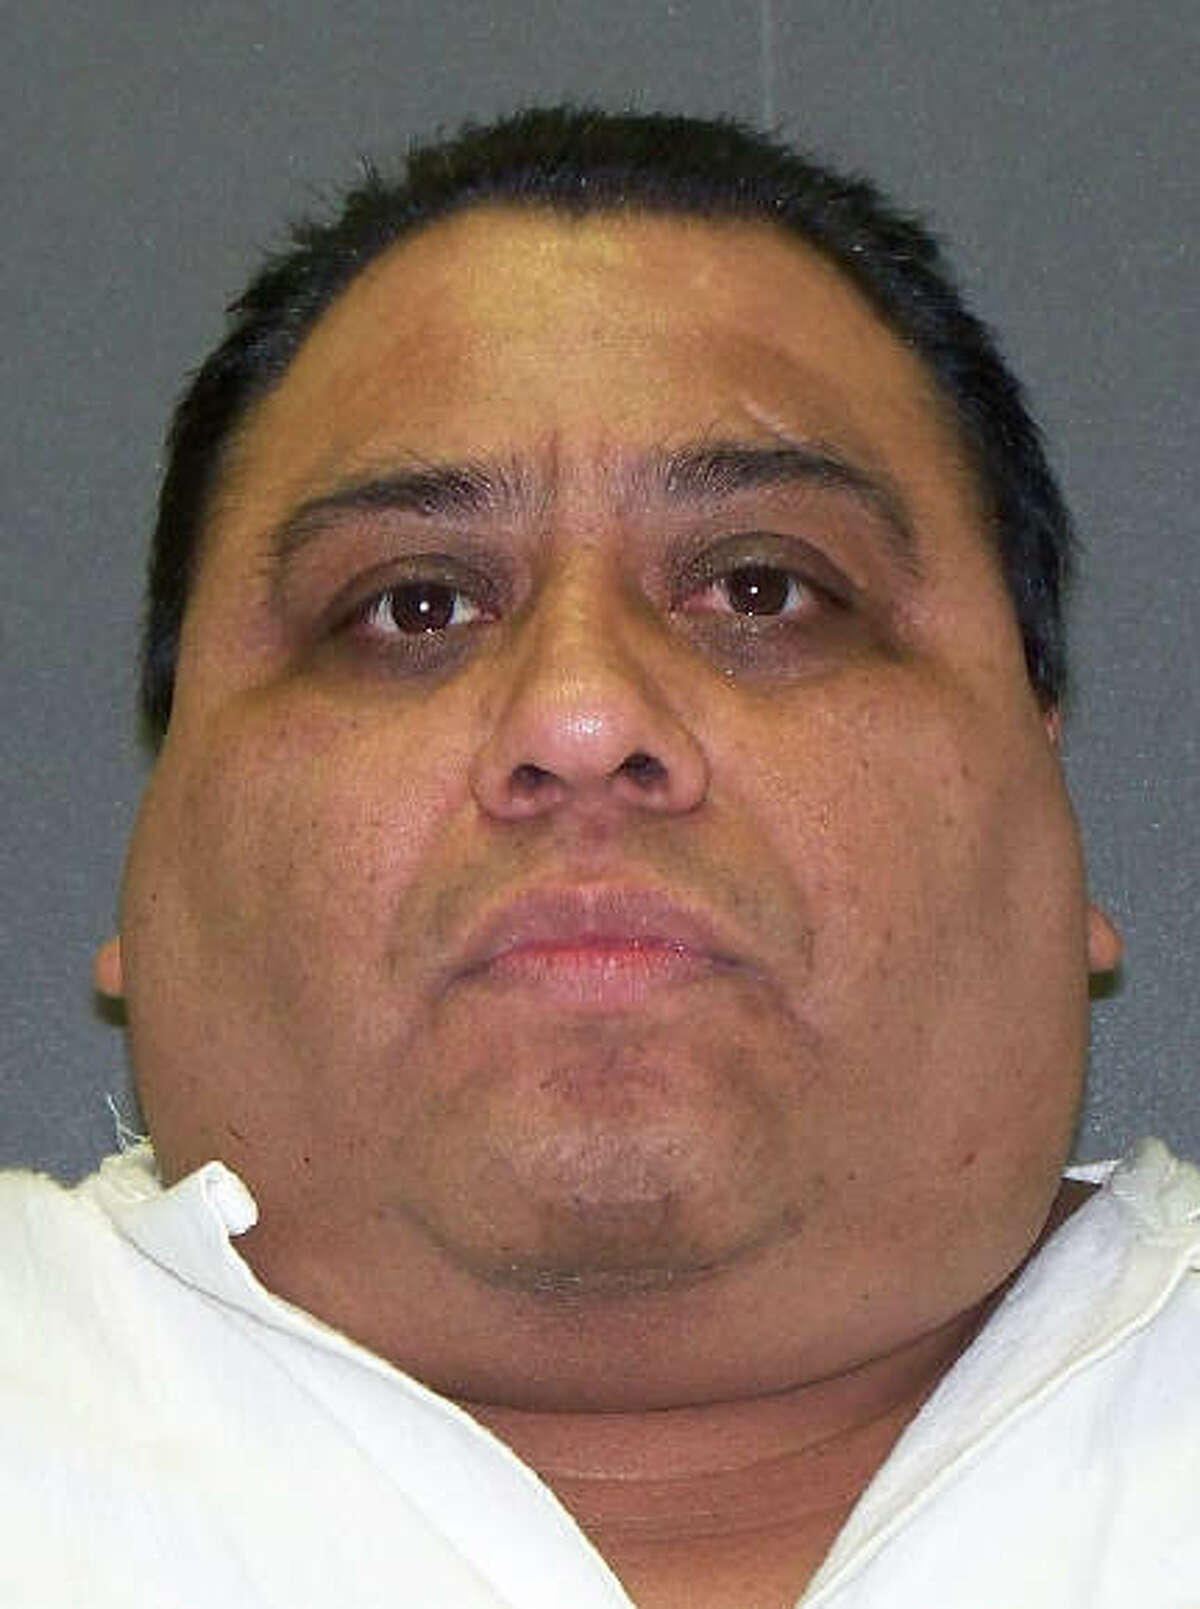 Ramiro Hernandez-Llanas is shown in this image provided by the Texas Department of Criminal Justice. A judge ordered Texas prison officials Thursday, March 27, 2014, to disclose the supplier of a new batch of lethal injection drugs to attorneys for convicted killers Hernandez-Llanas and Tommy Lynn Sells, both set to be executed in April, 2014, but she stopped short of revealing the identity of the manufacturer to the public. (AP Photo/Texas Department of Criminal Justice)